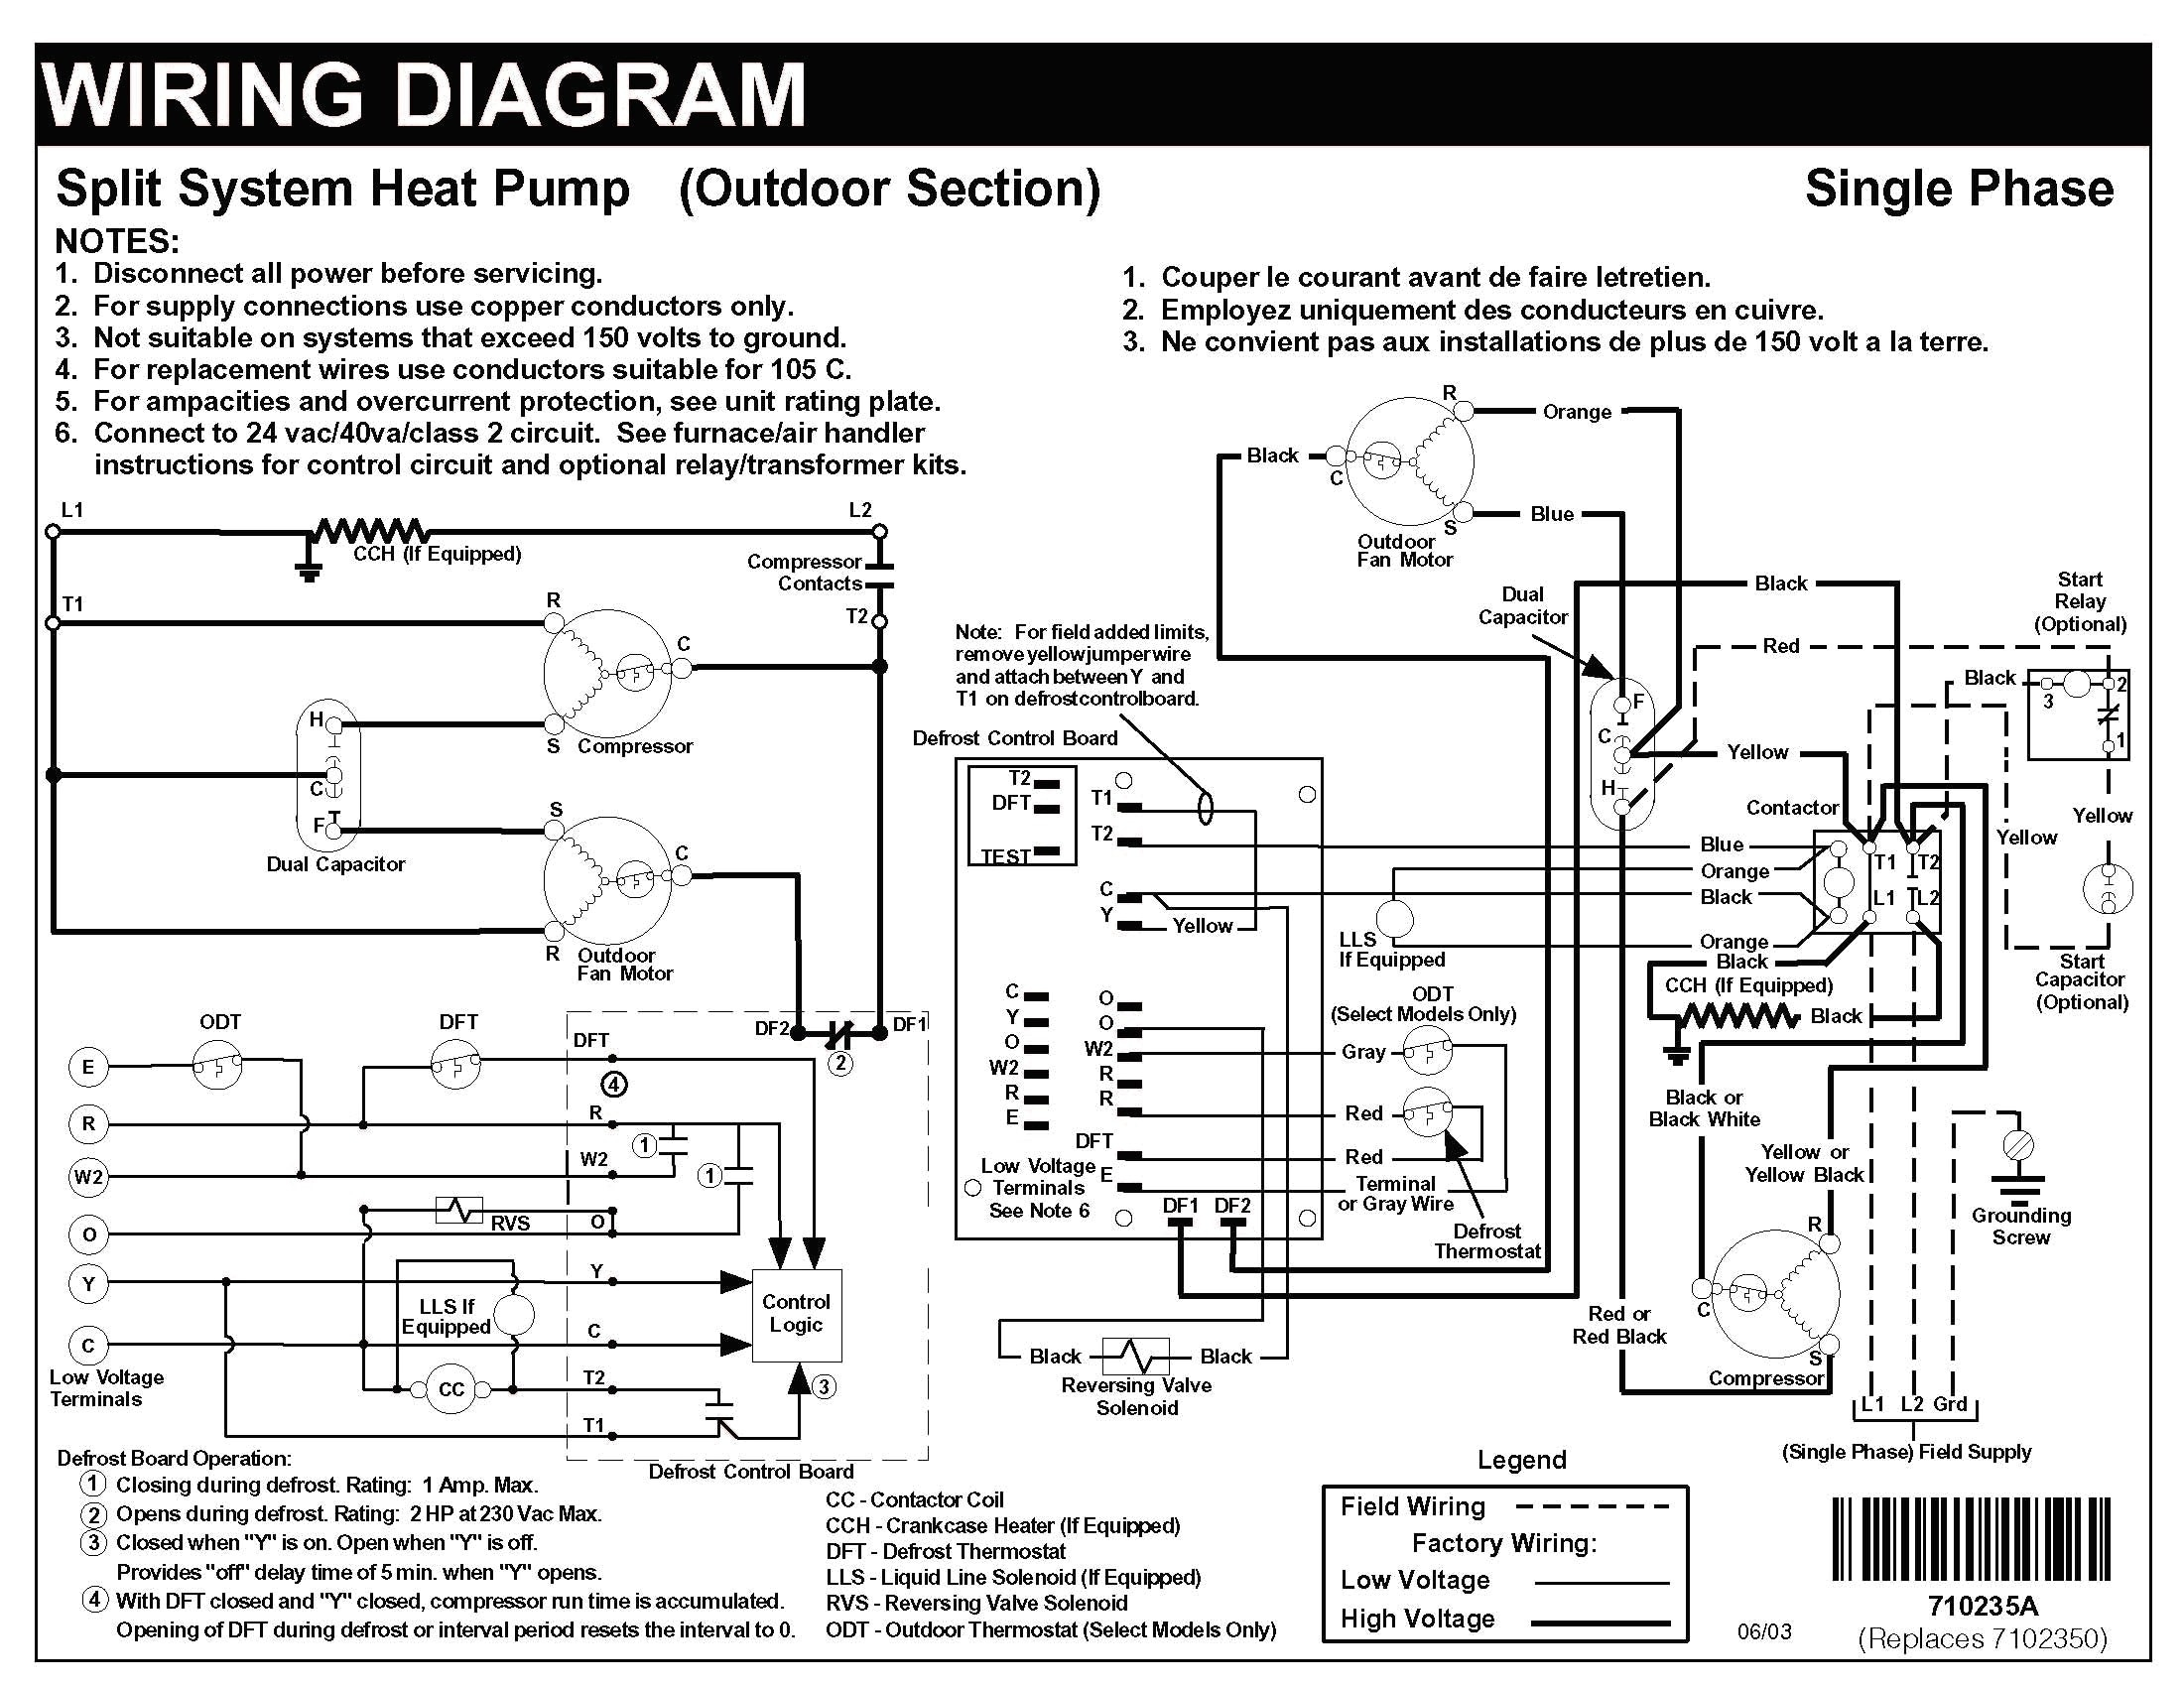 Pool Heat Pump Wiring Diagram - Nest thermostat Wiring Diagram Heat Pump Elegant Famous Carrier Heat Pump Wiring Diagram Gallery Electrical Nest thermostat Wiring Diagram Heat Pump In 11n